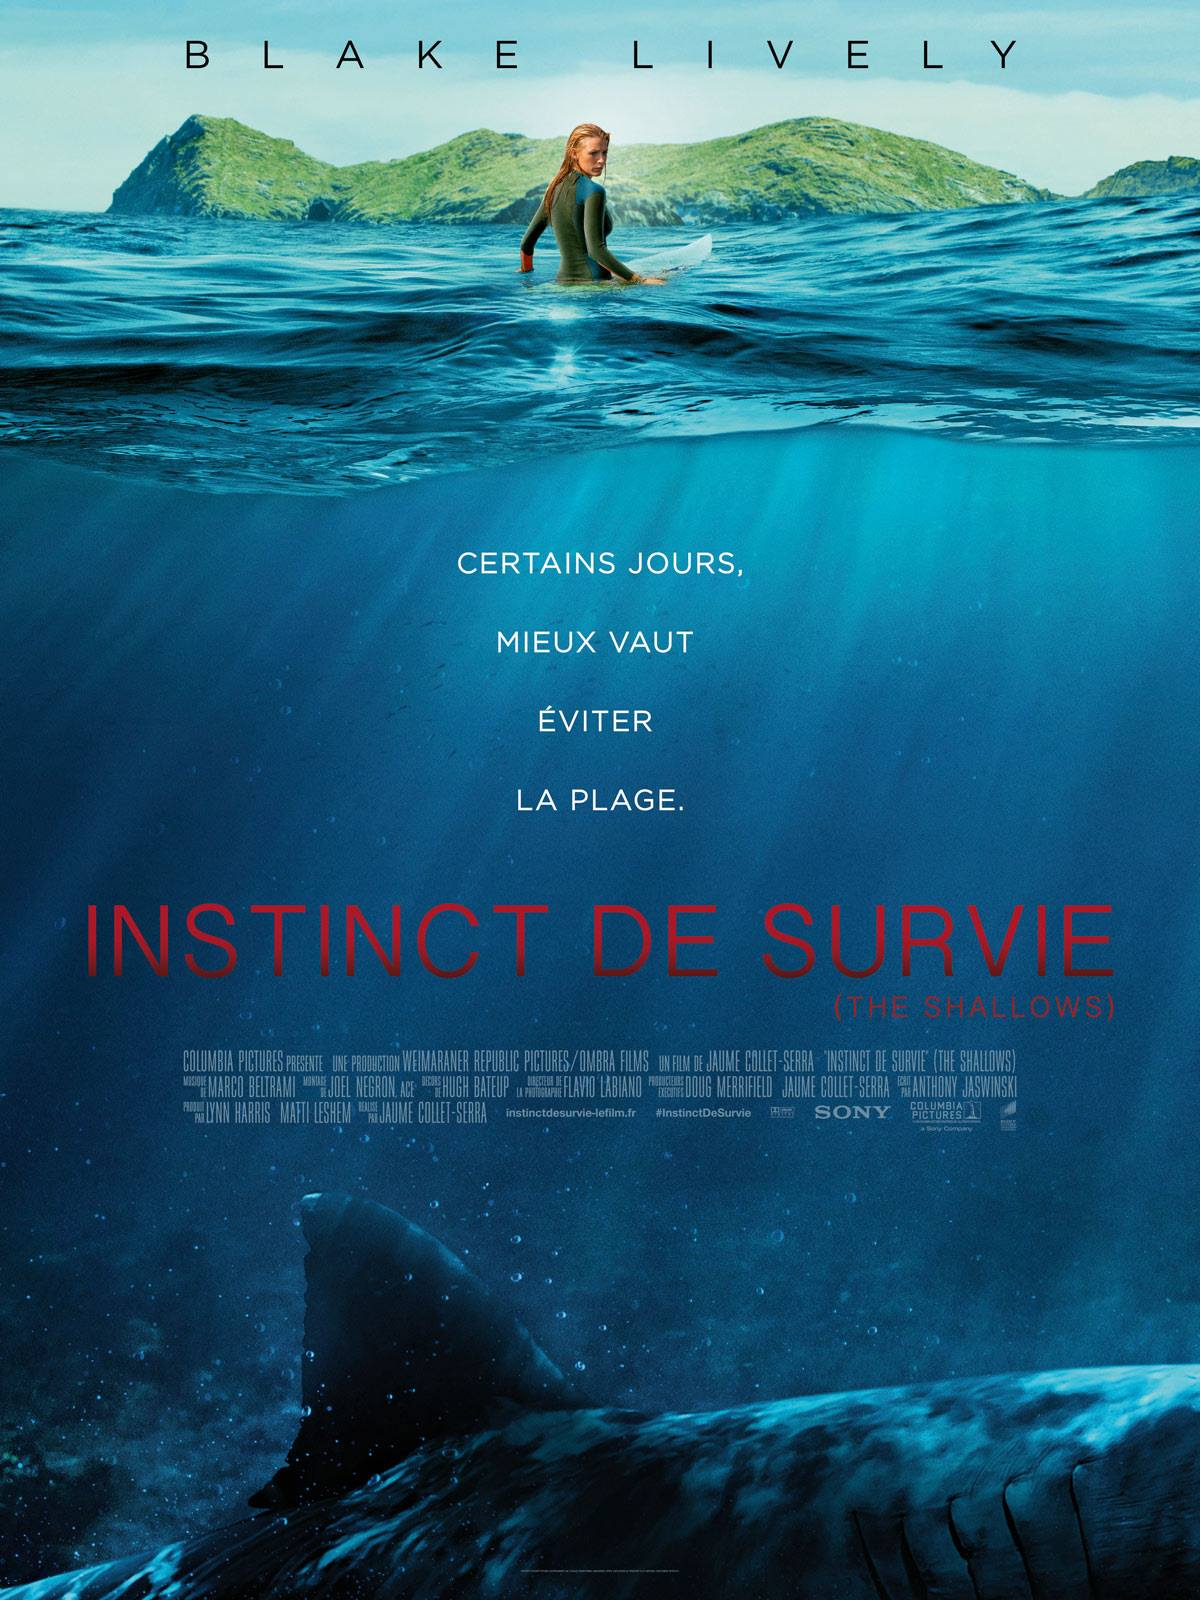 Instinct de survie - Critique - Collet-Serra - Blake Lively